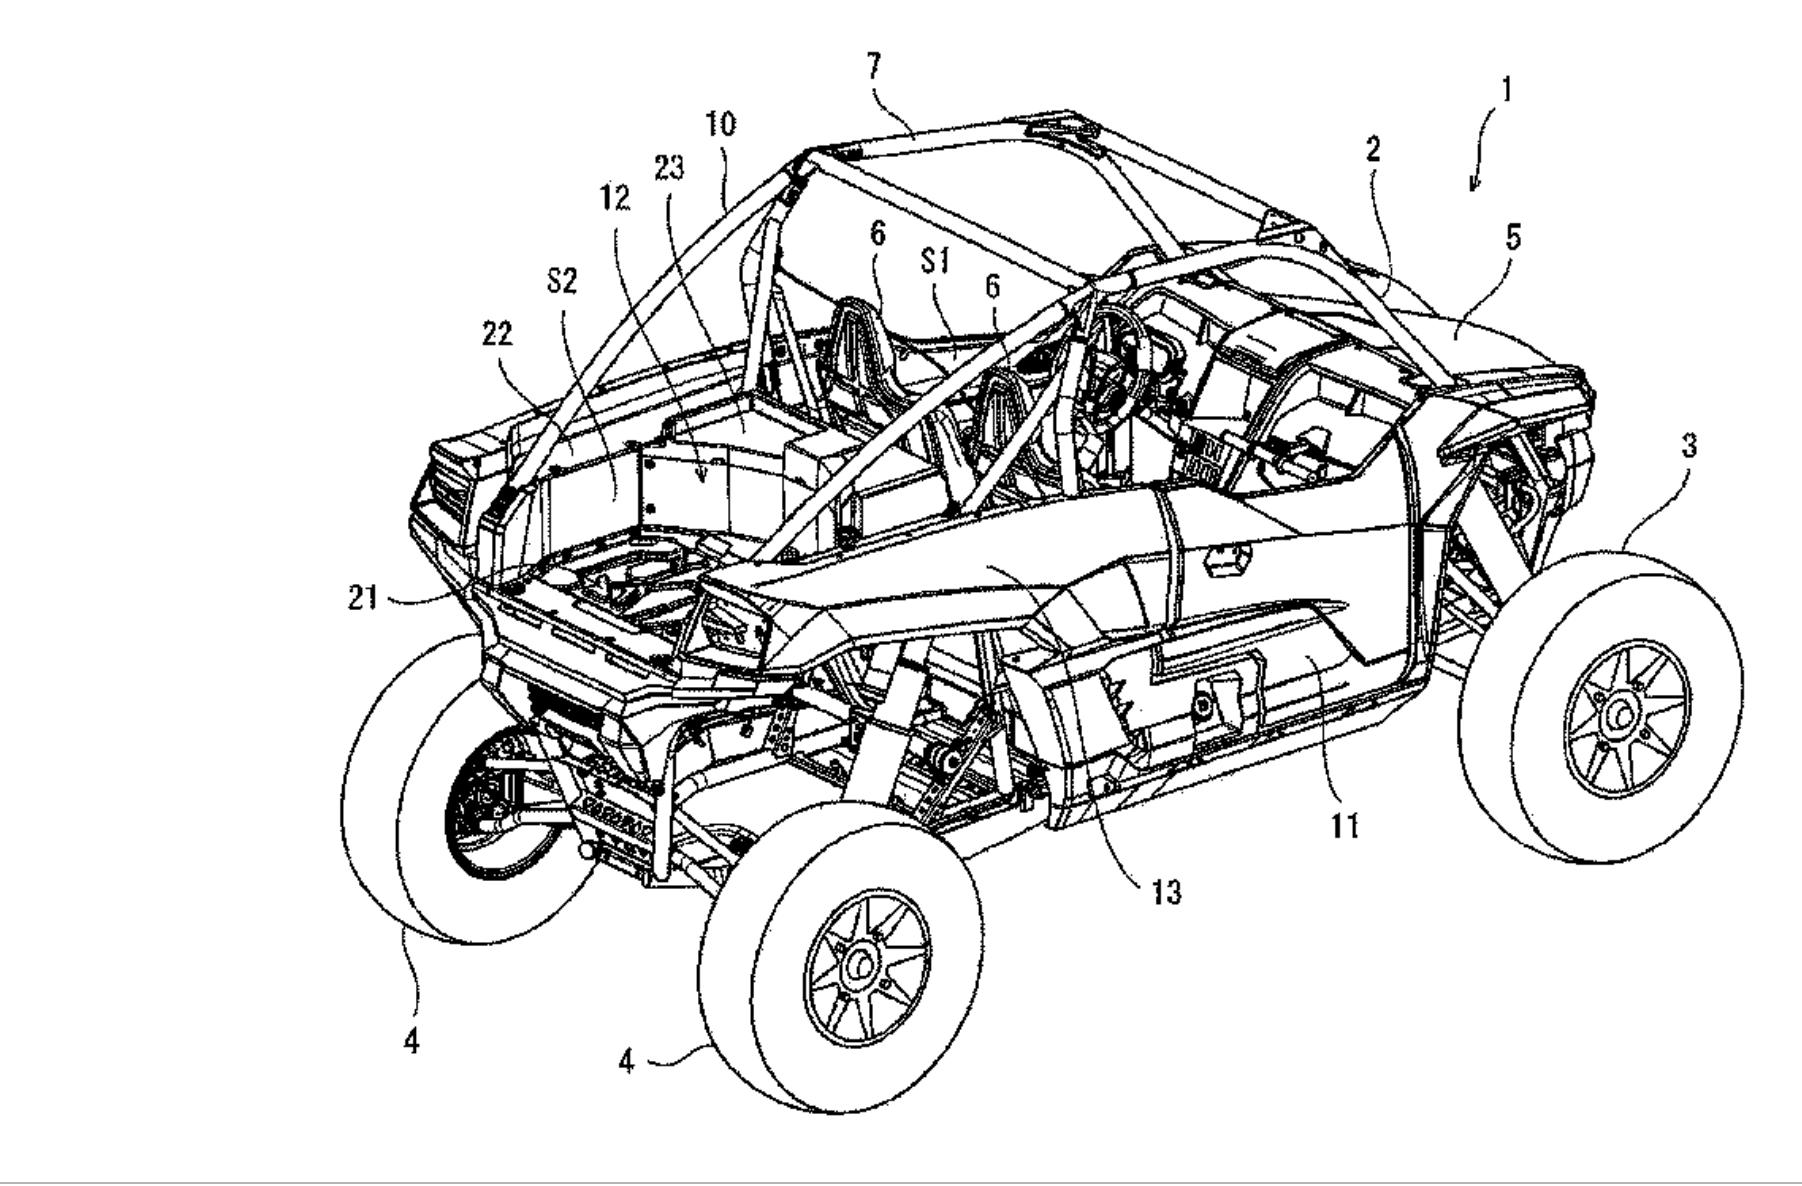 Proof Of A Kawasaki Sport Side By Side Surfaces In Patent